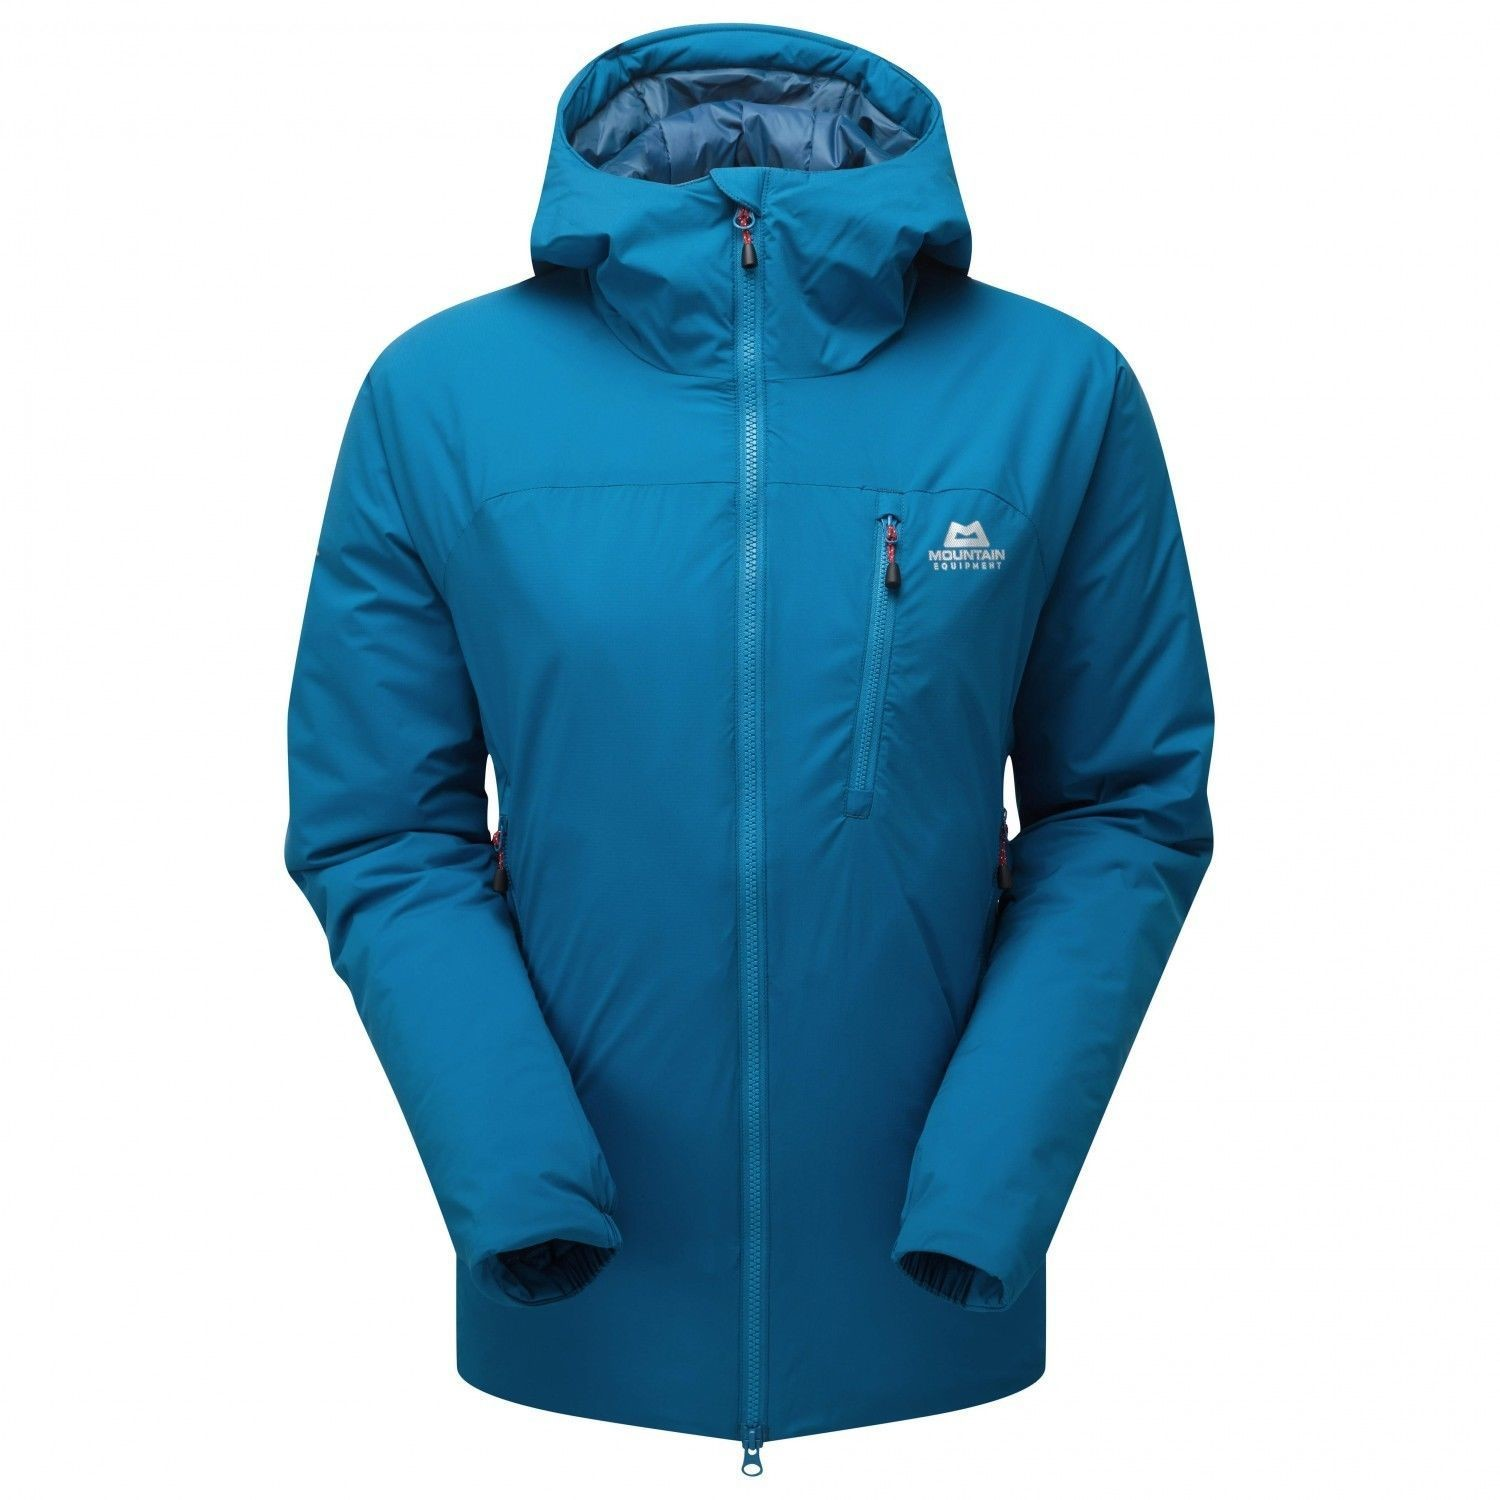 MOUNTAIN EQUIPMENT MERLON INSULATED JACKET LAGOON BLUE 12